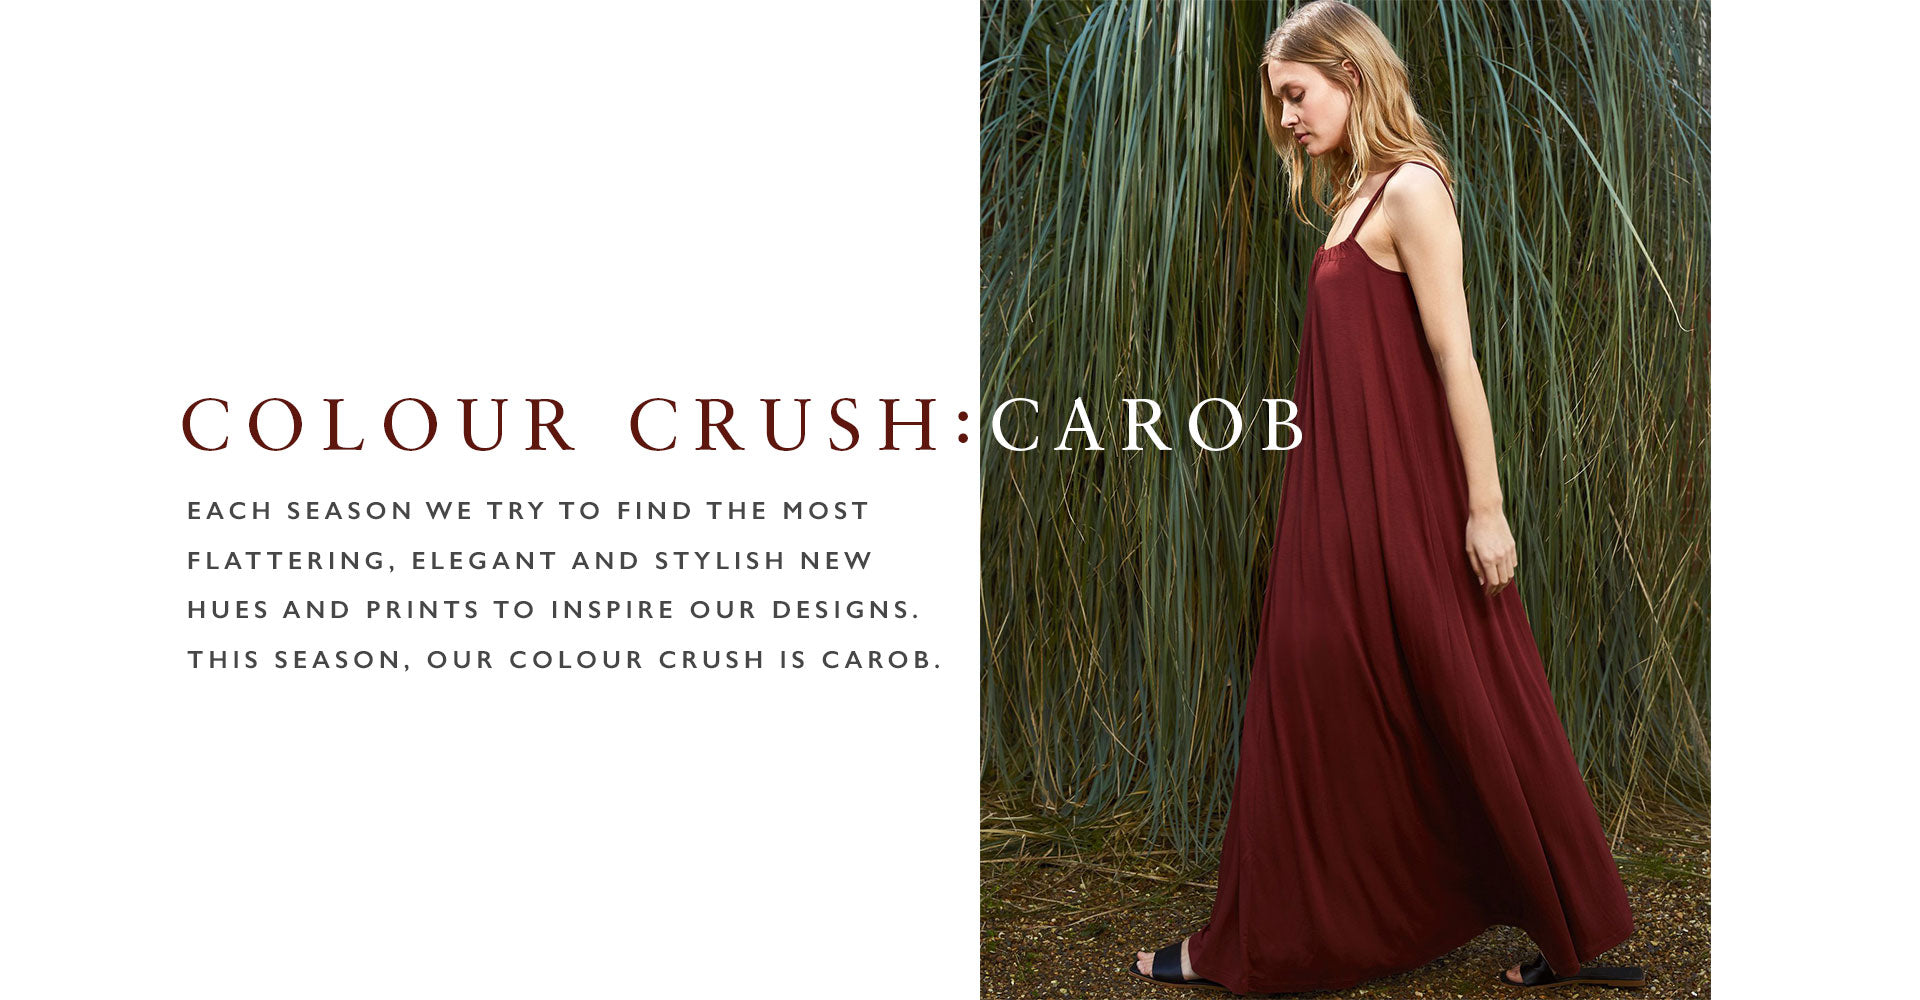 Colour Crush: Carob